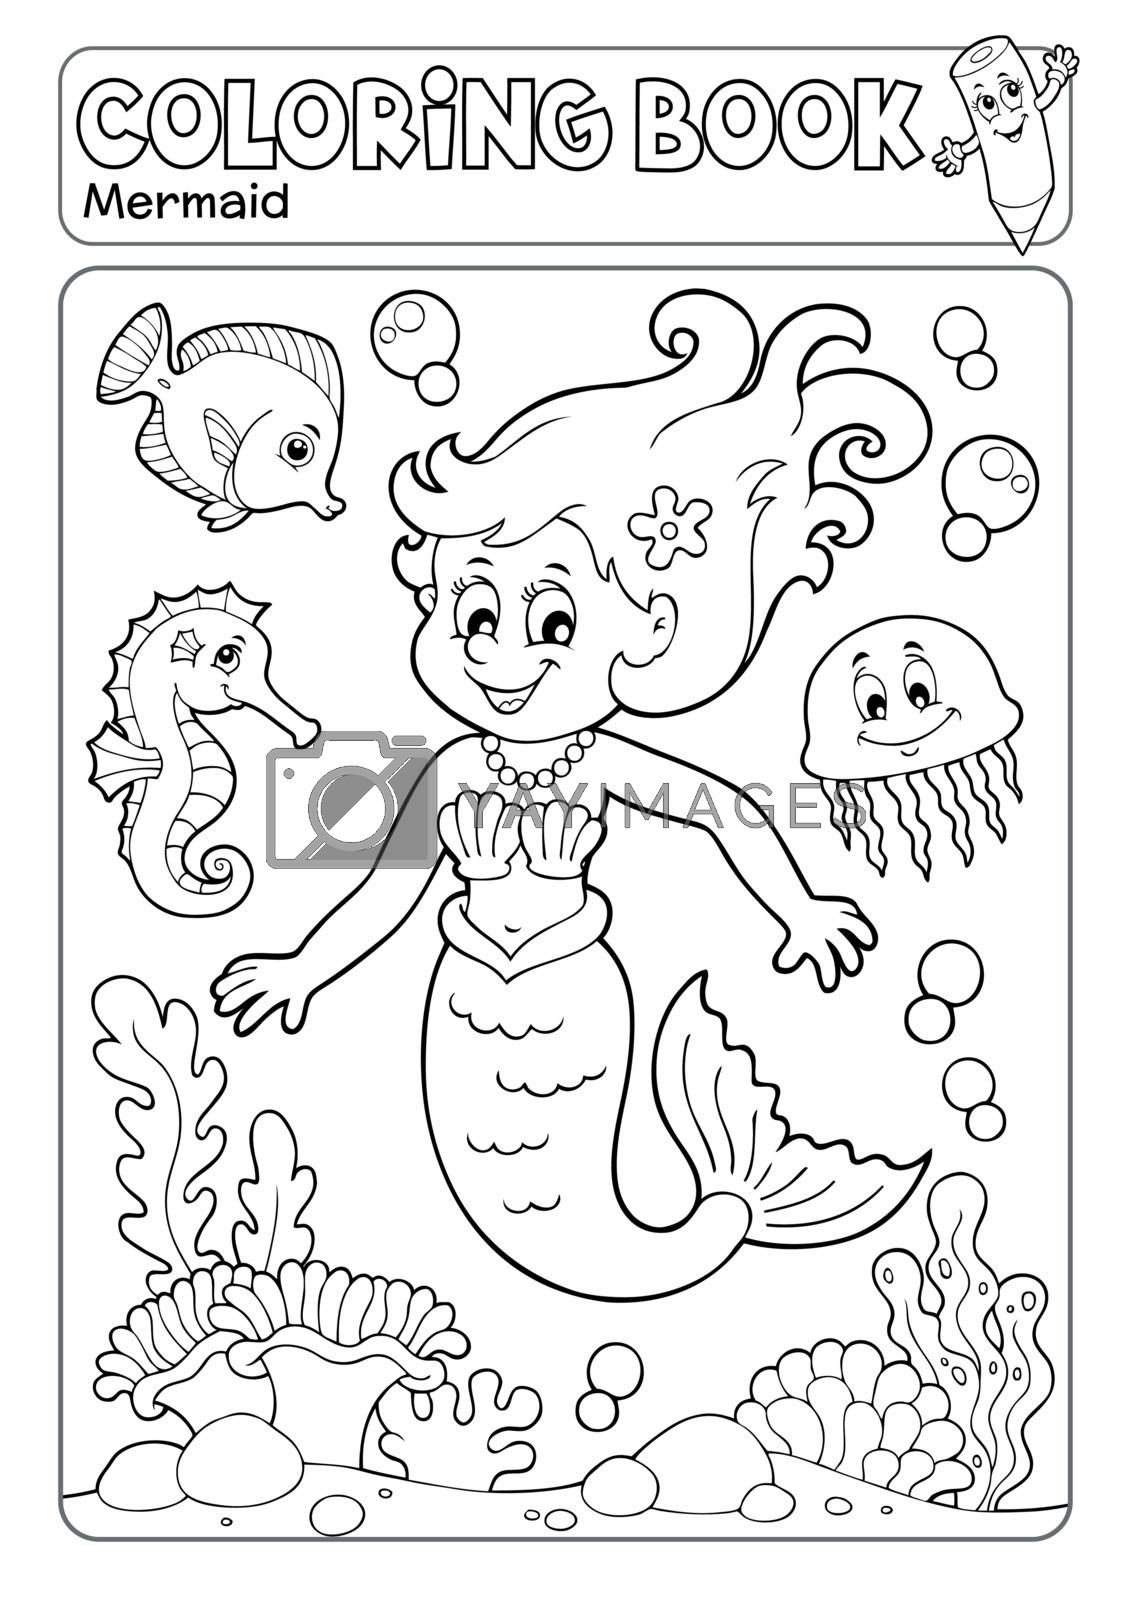 Coloring book mermaid topic 4 - eps10 vector illustration.